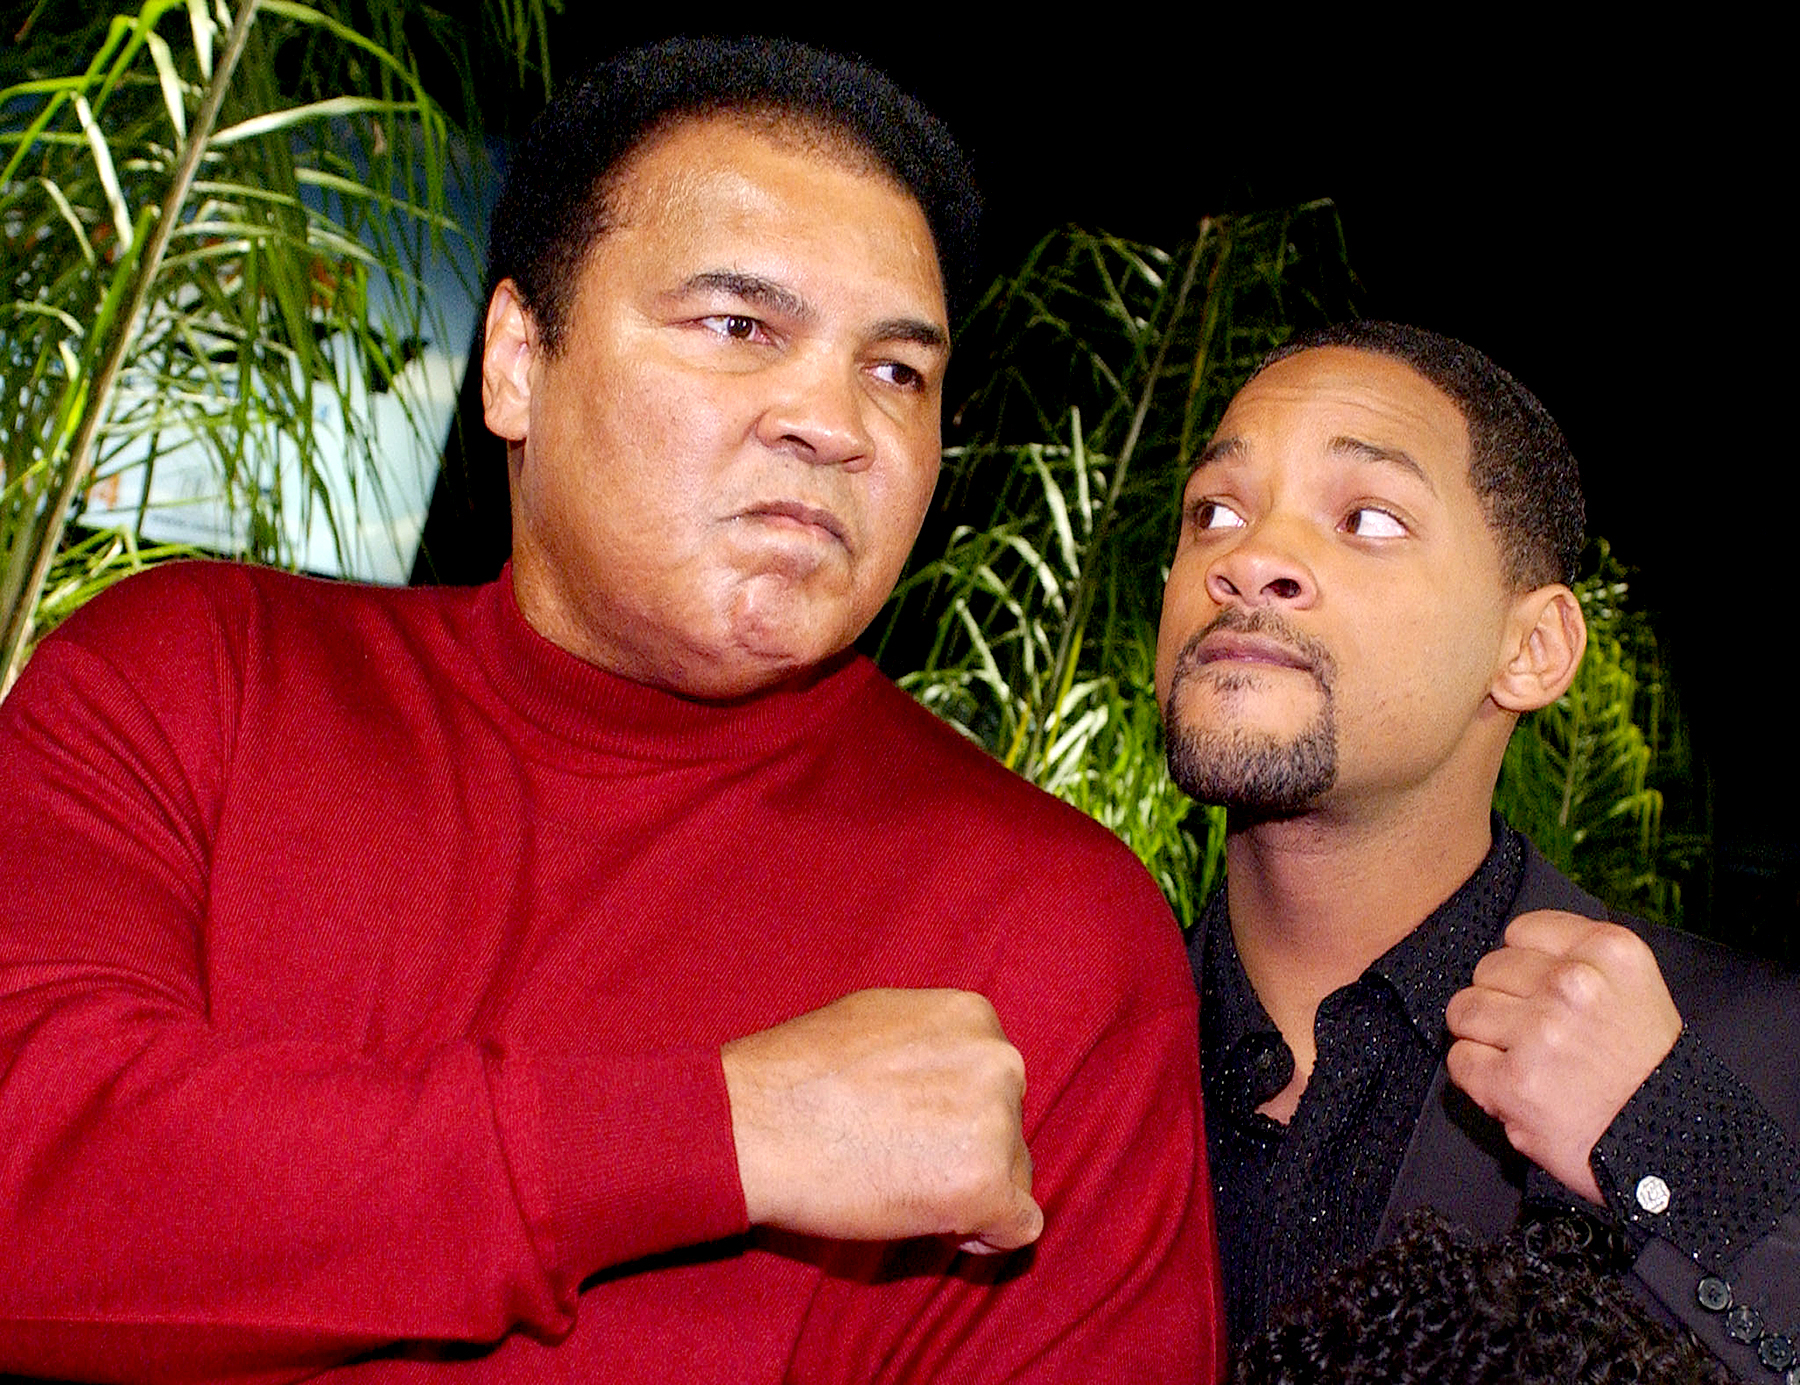 Muhammad Ali jokes with Will Smith who portrays him in film